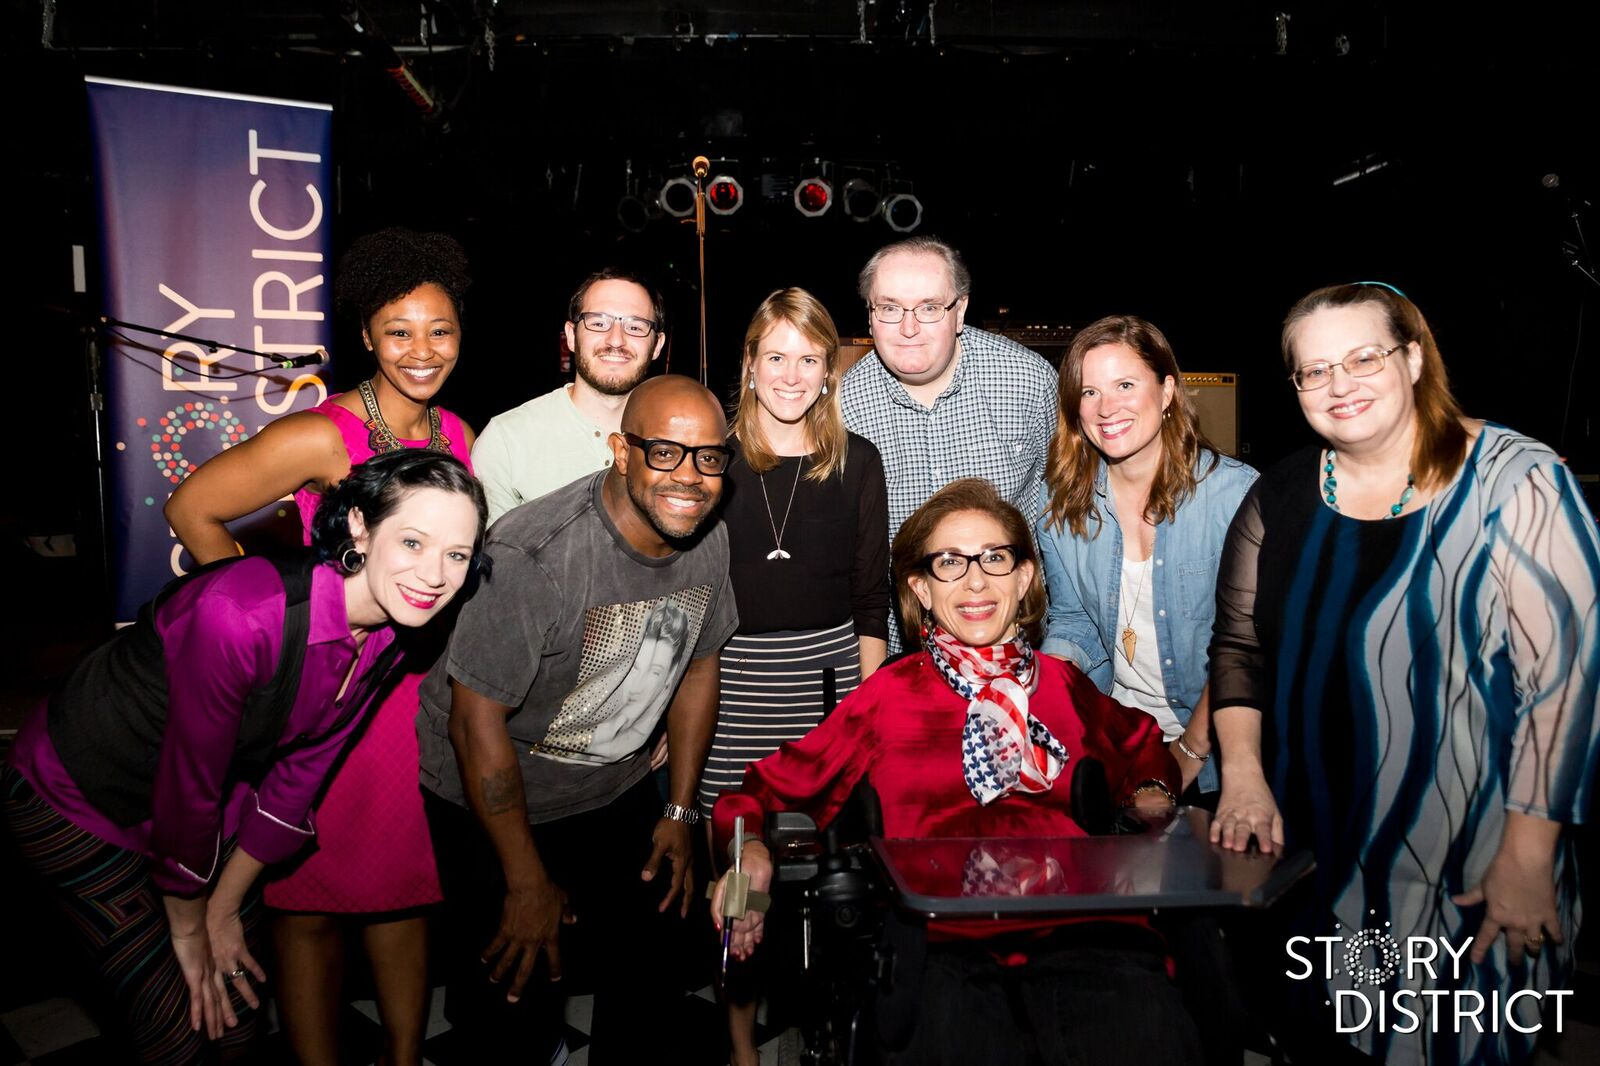 All the speakers at the Howl  event put on by Story District at the Black Cat in DC, 10-18.